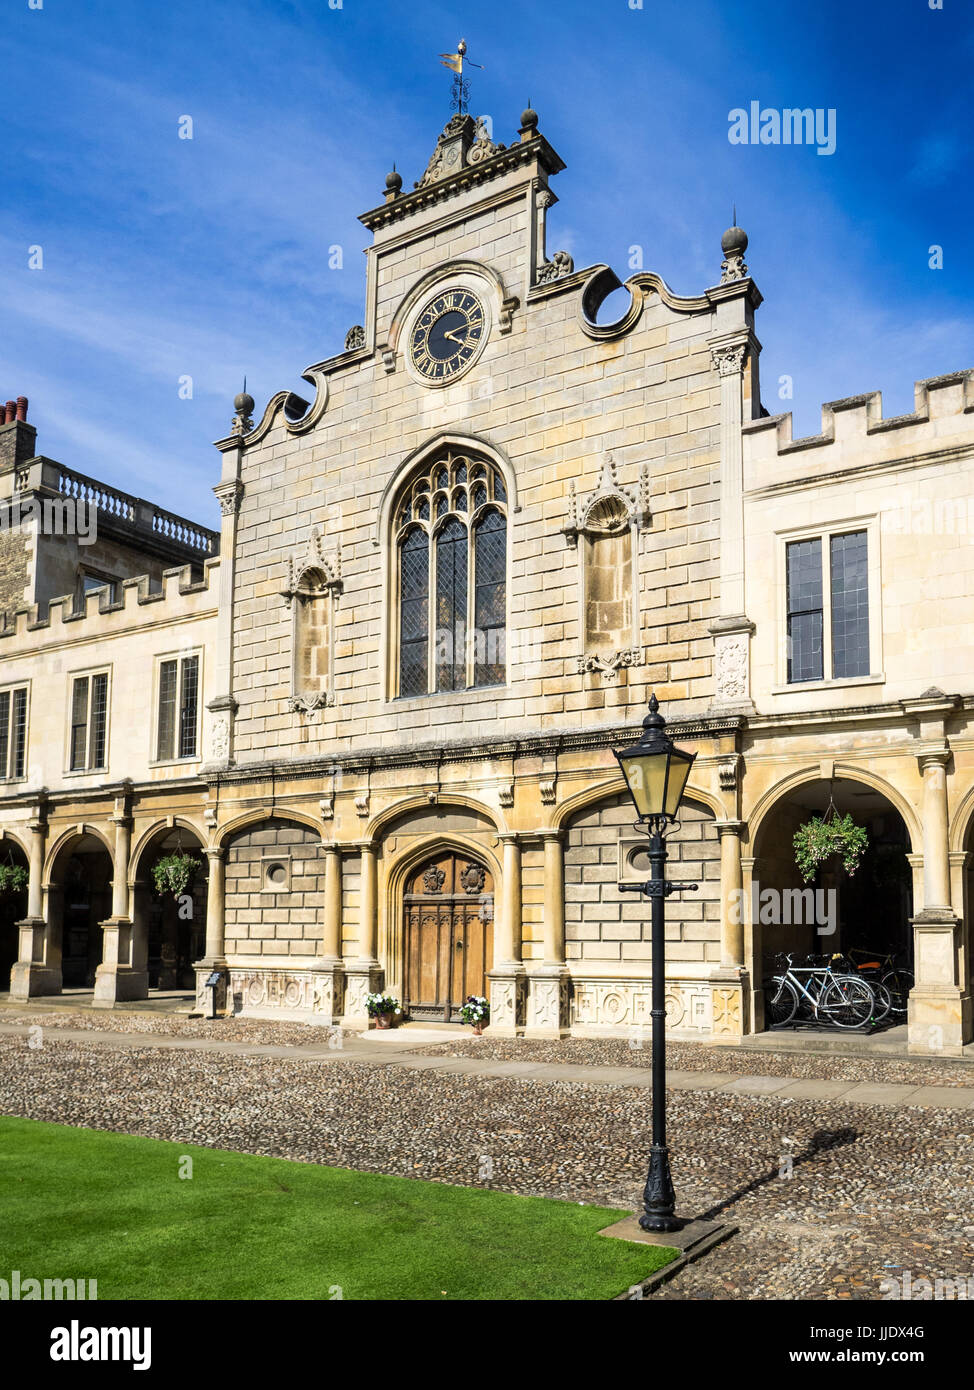 Cambridge - The Clock Tower of Peterhouse College, part of the University of Cambridge. The college was founded - Stock Image